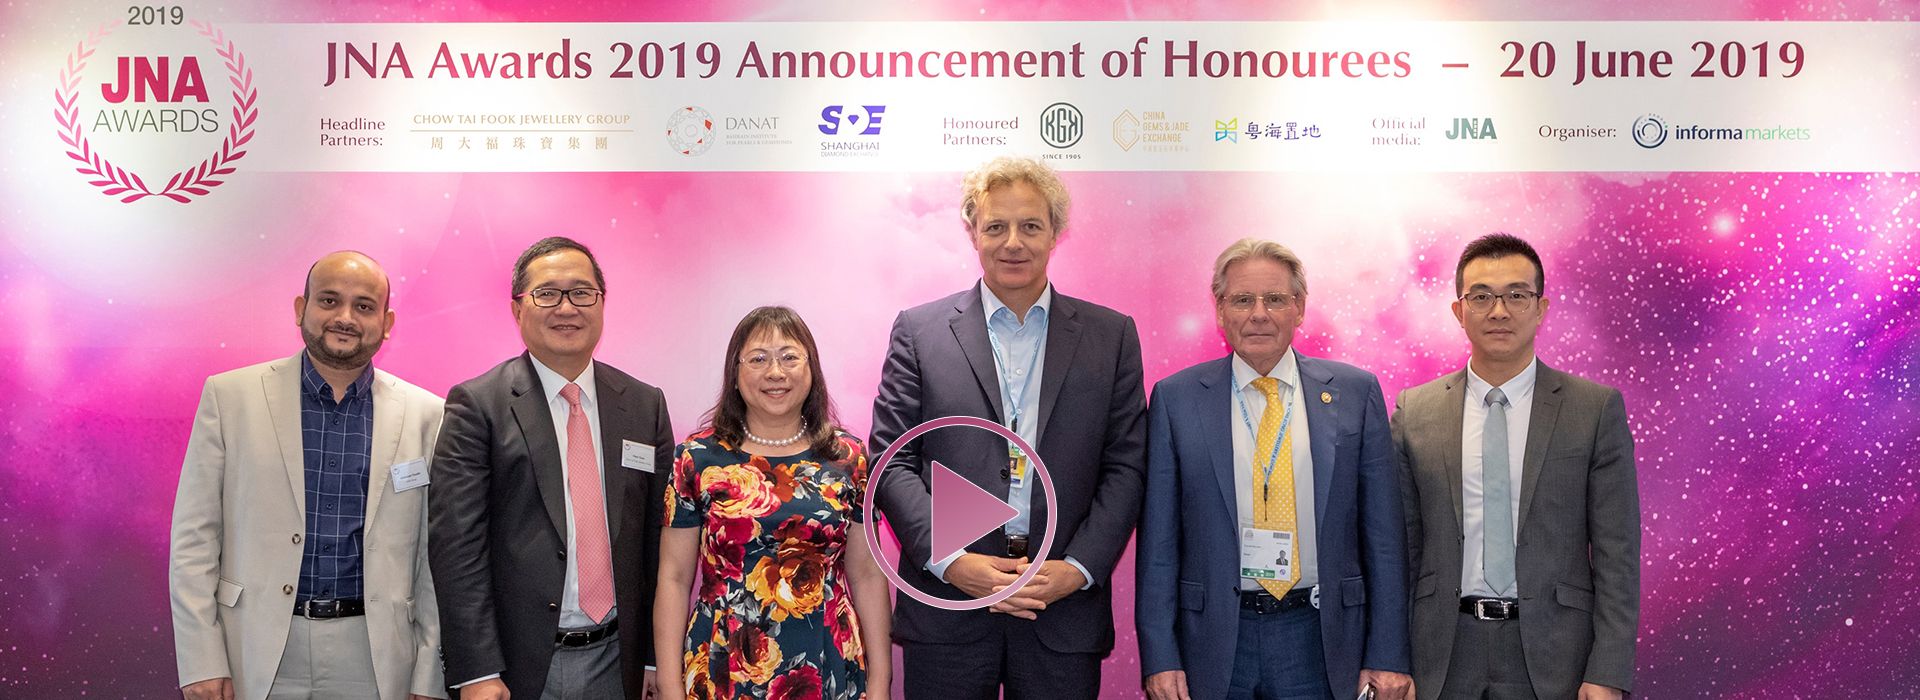 2019 Honouree Announcement